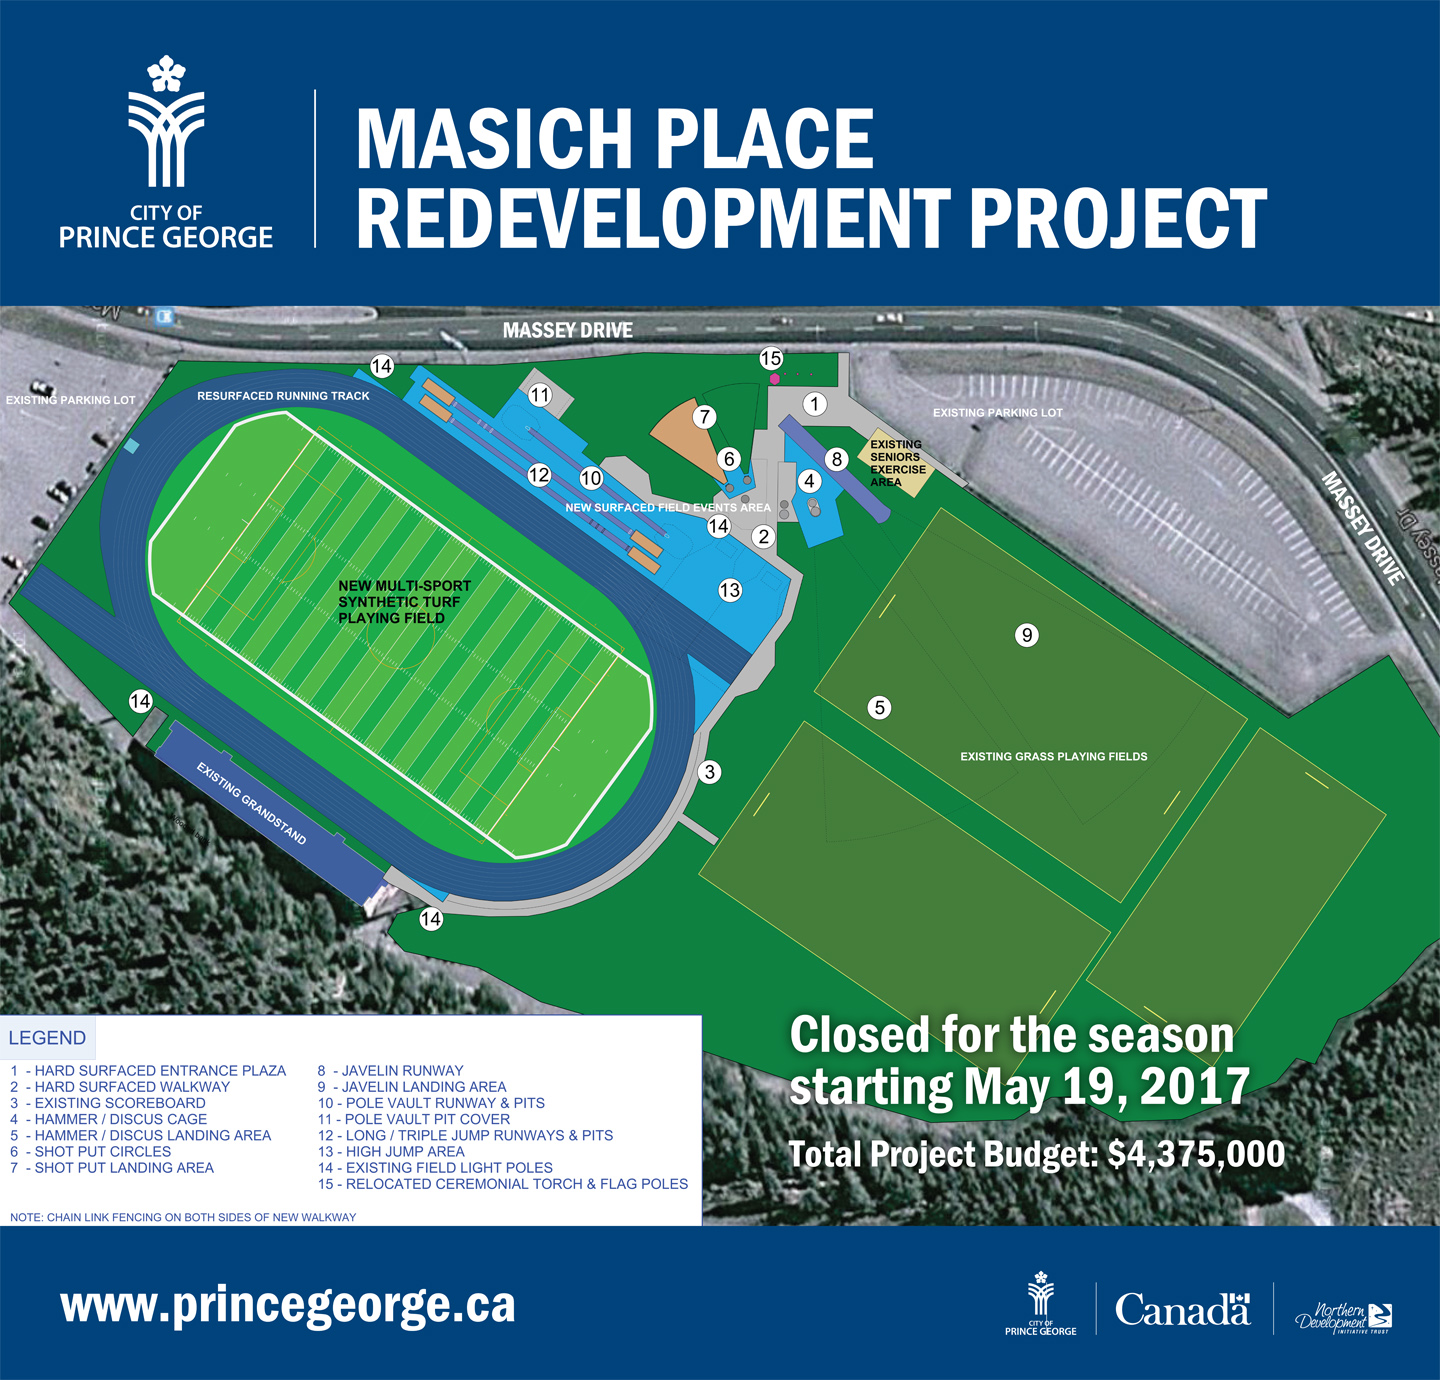 Masich Place Redevelopment Project